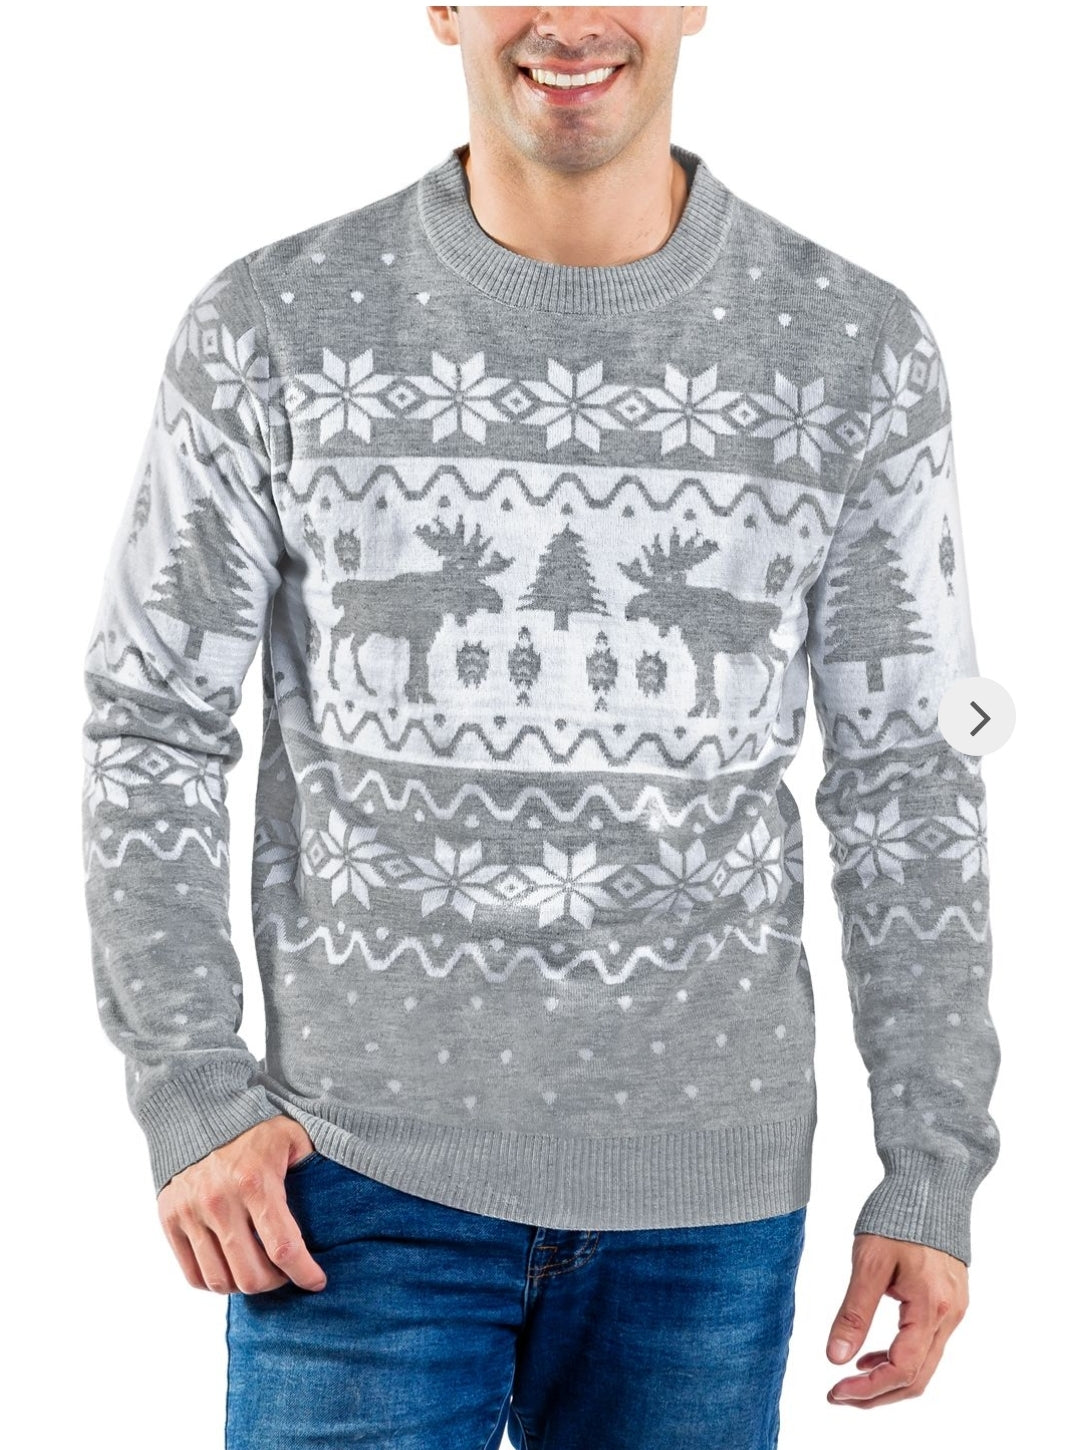 Tipsy Elves Men's Merry Moose Sweater